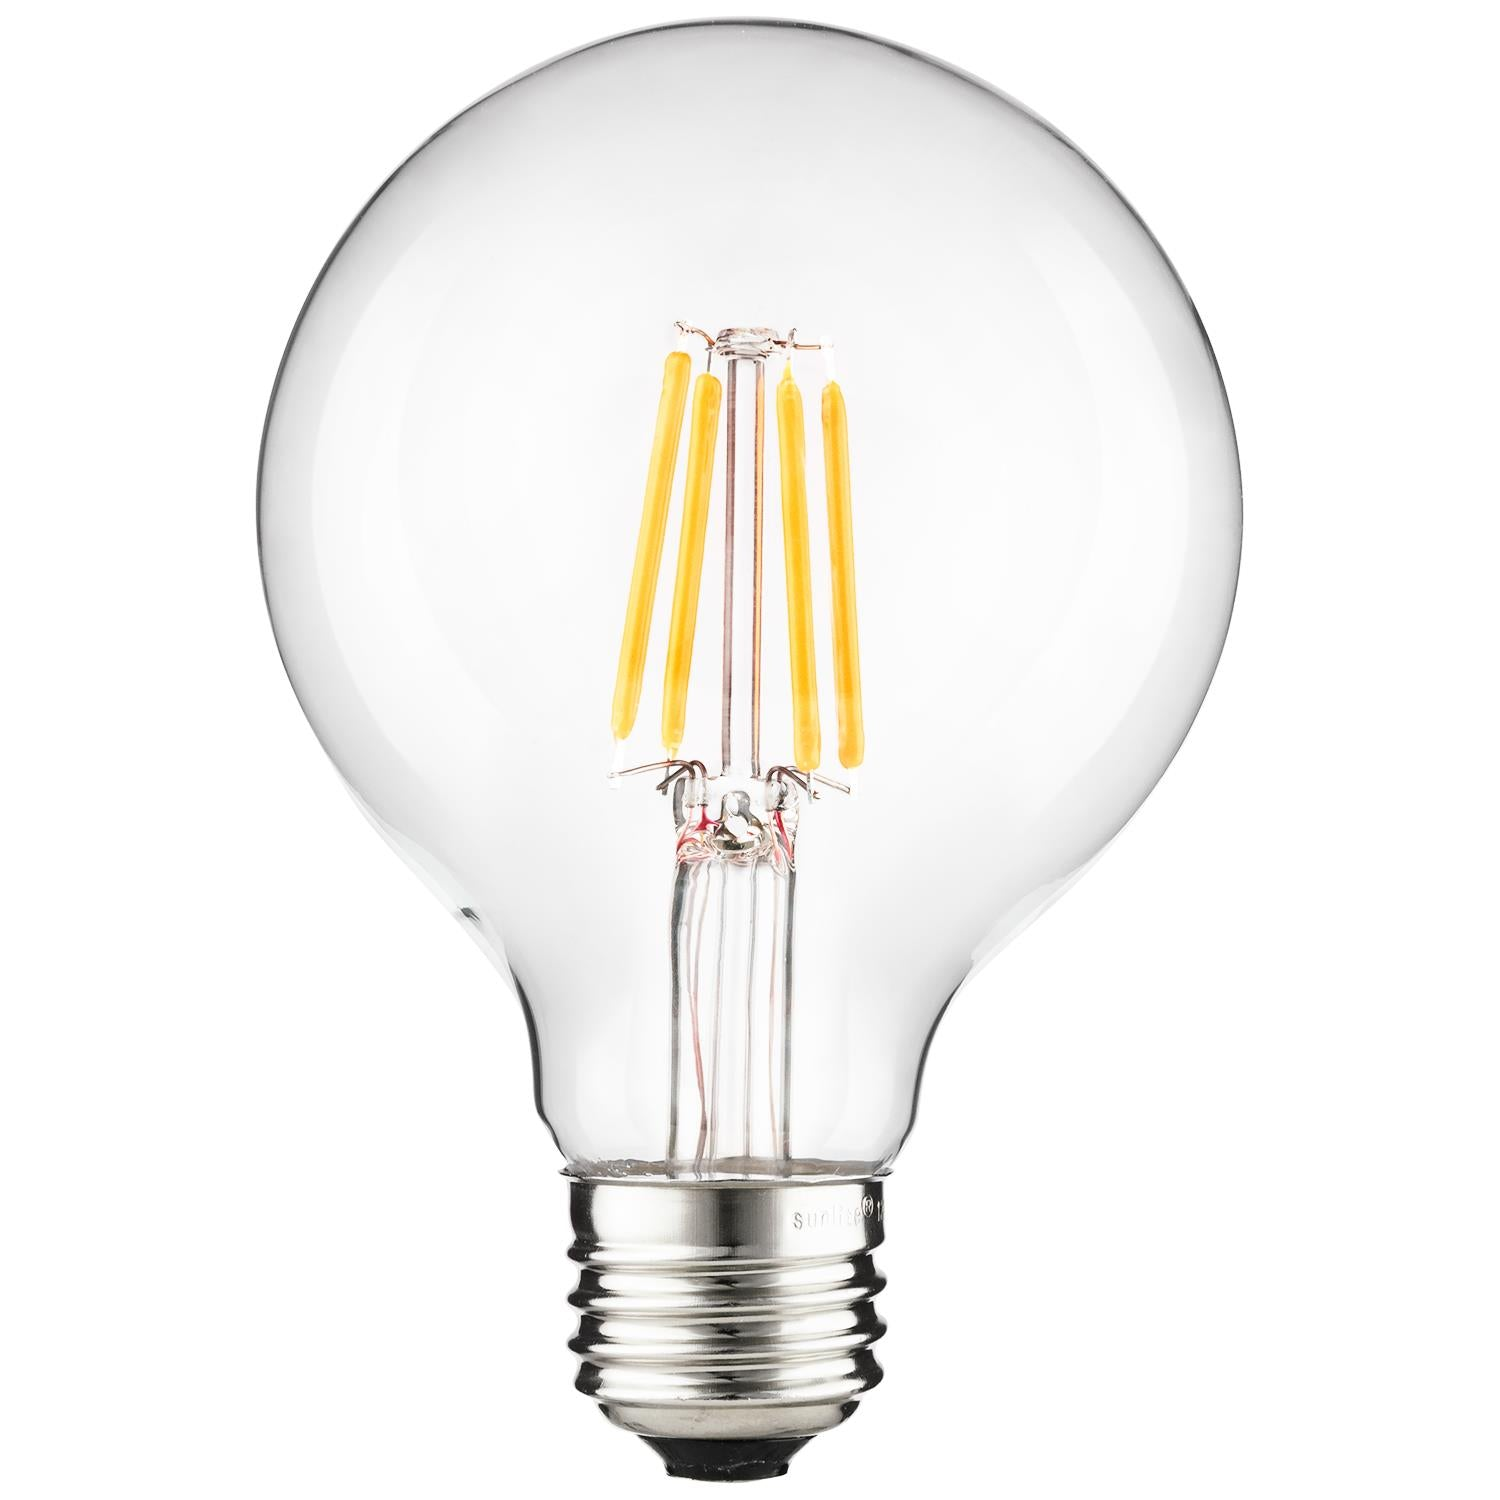 SUNLITE 6w (75w Equivalent) LED Filament G25 Dimmable 4000K Cool White